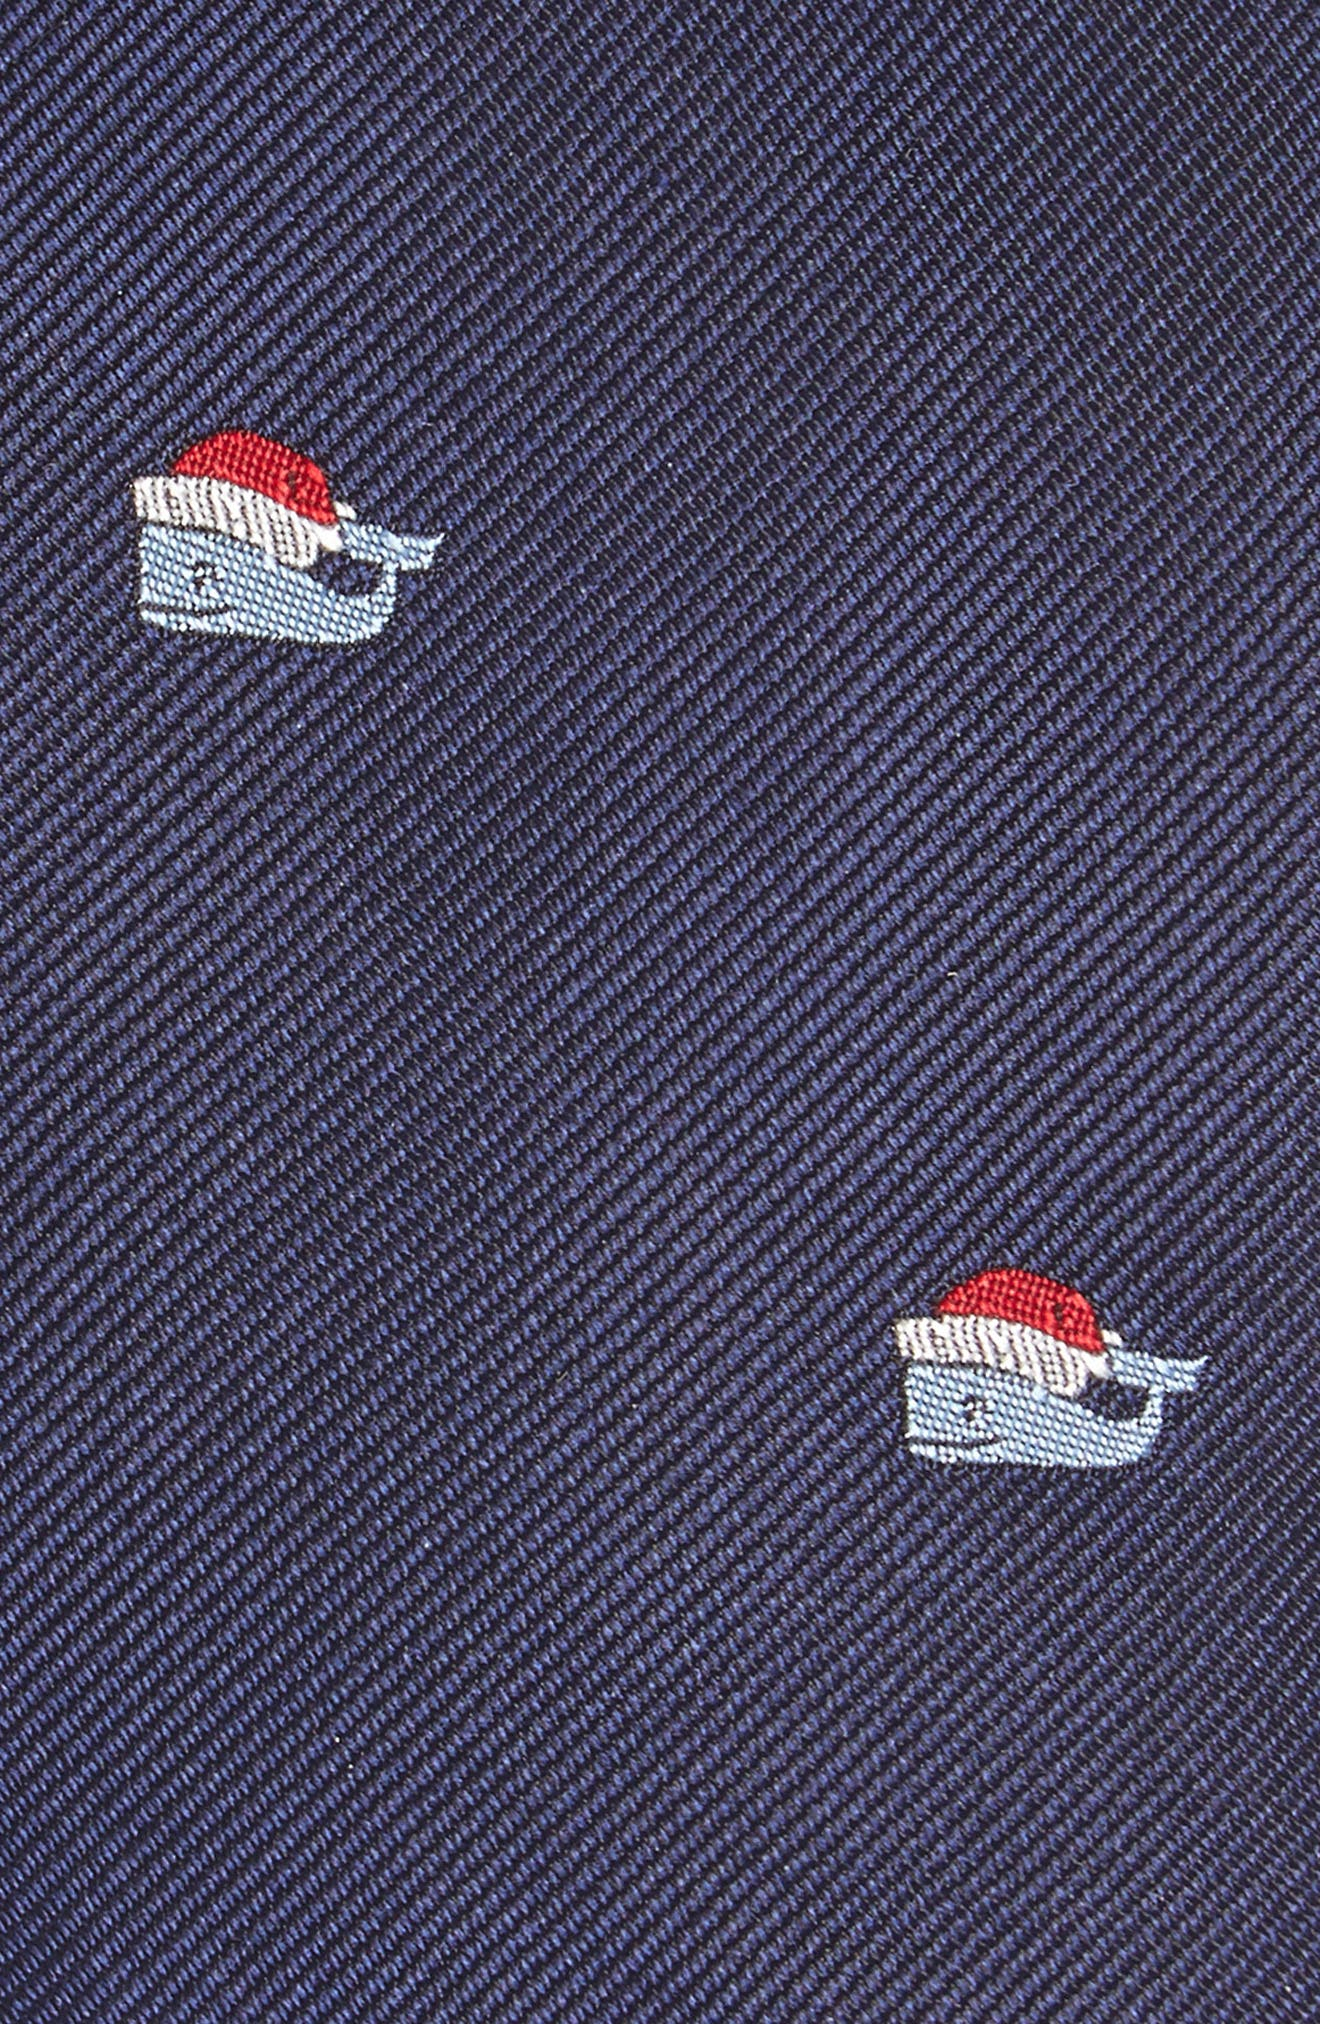 Santa Whale Silk Tie,                             Alternate thumbnail 2, color,                             410